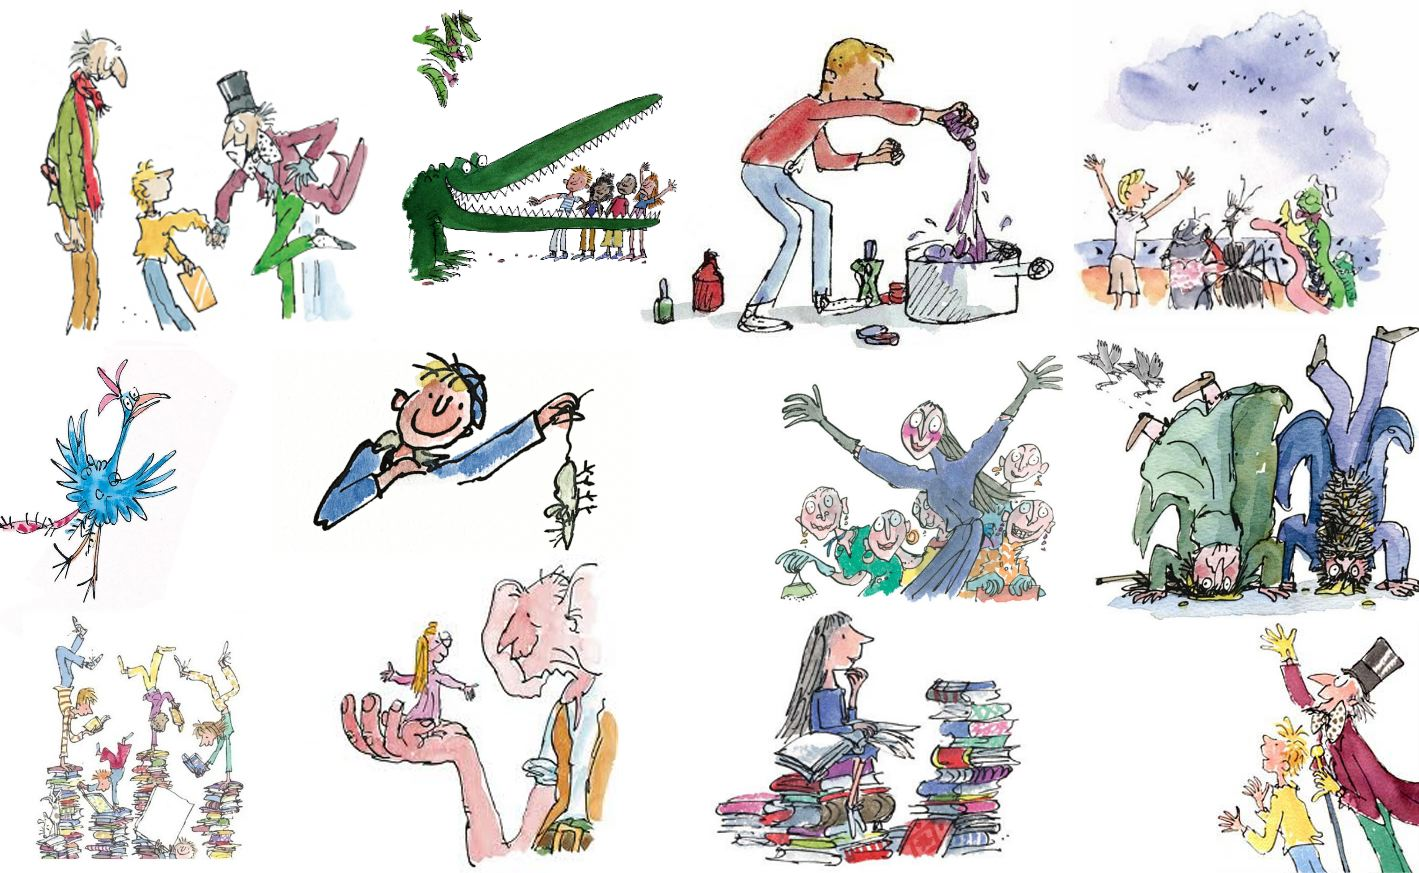 Workbooks the witches roald dahl worksheets : Roald Dahl | Roald Dahl Wiki | FANDOM powered by Wikia